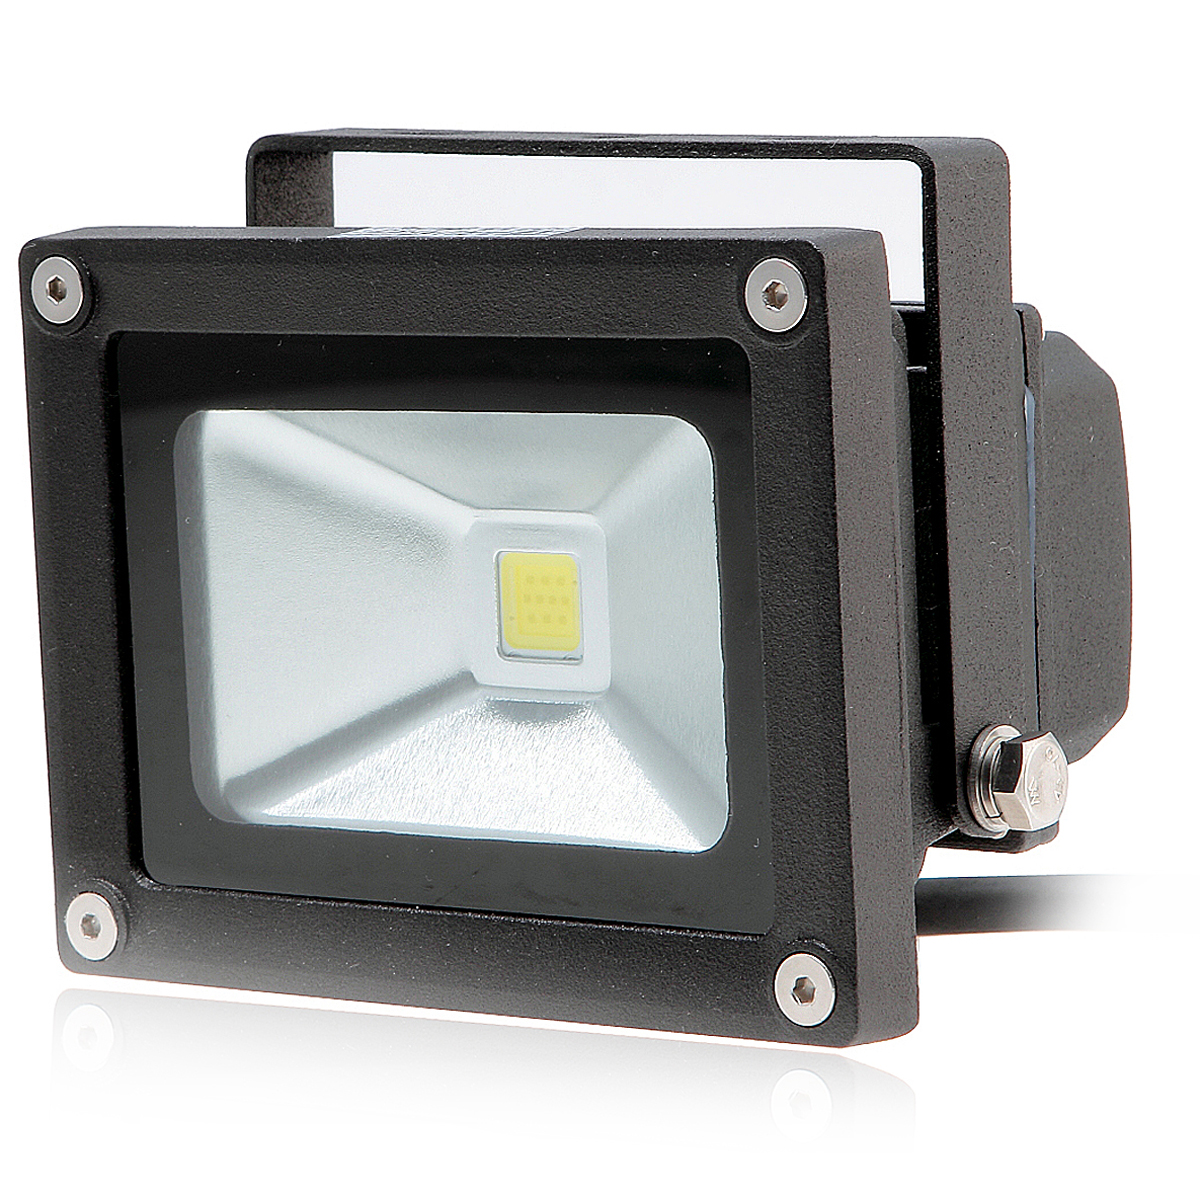 What exactly are the 10w led flood lights outdoor good for in my 10w led flood lights outdoor photo 7 aloadofball Image collections